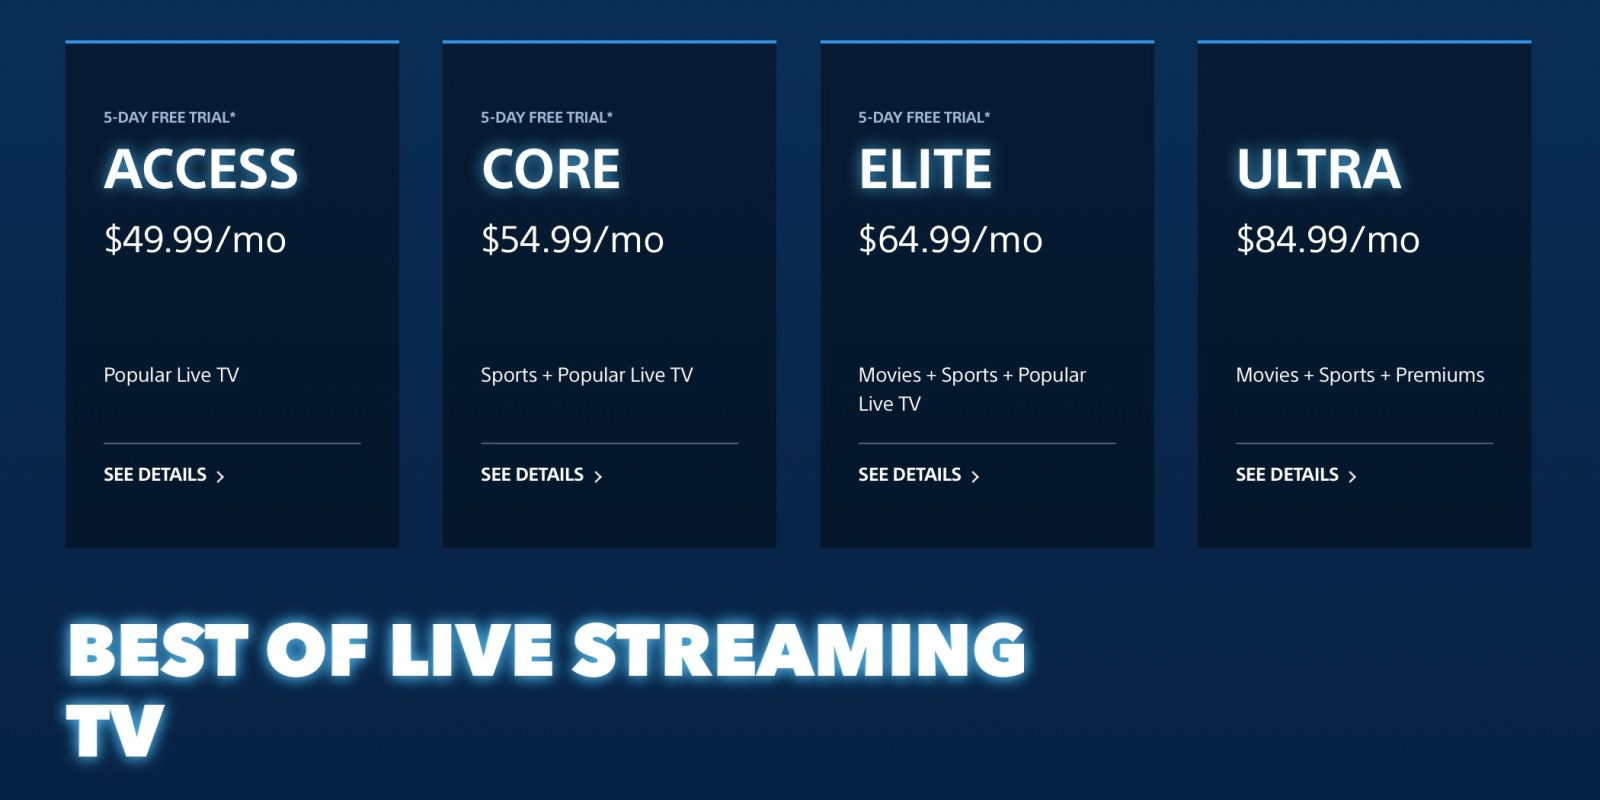 PlayStation Vue ups all Live TV streaming plans by $5 - 9to5Mac